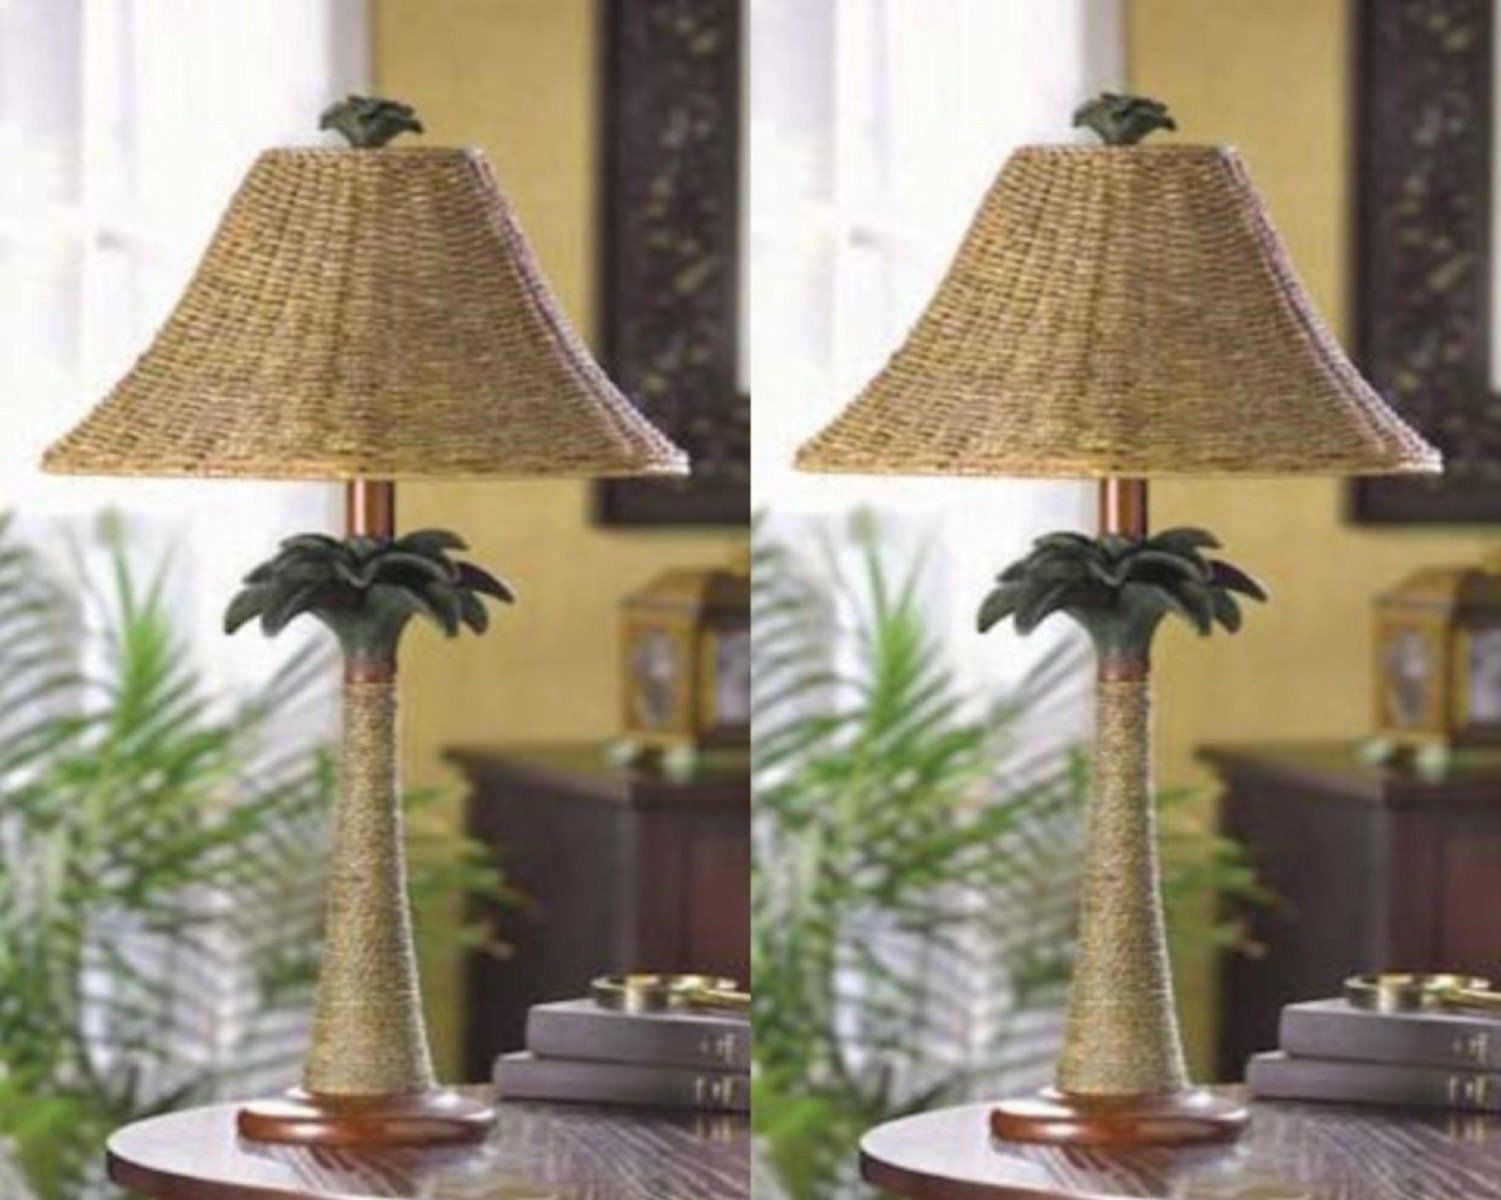 2 PALM TREE TABLE LAMPS Rattan Styled Tropical Decor